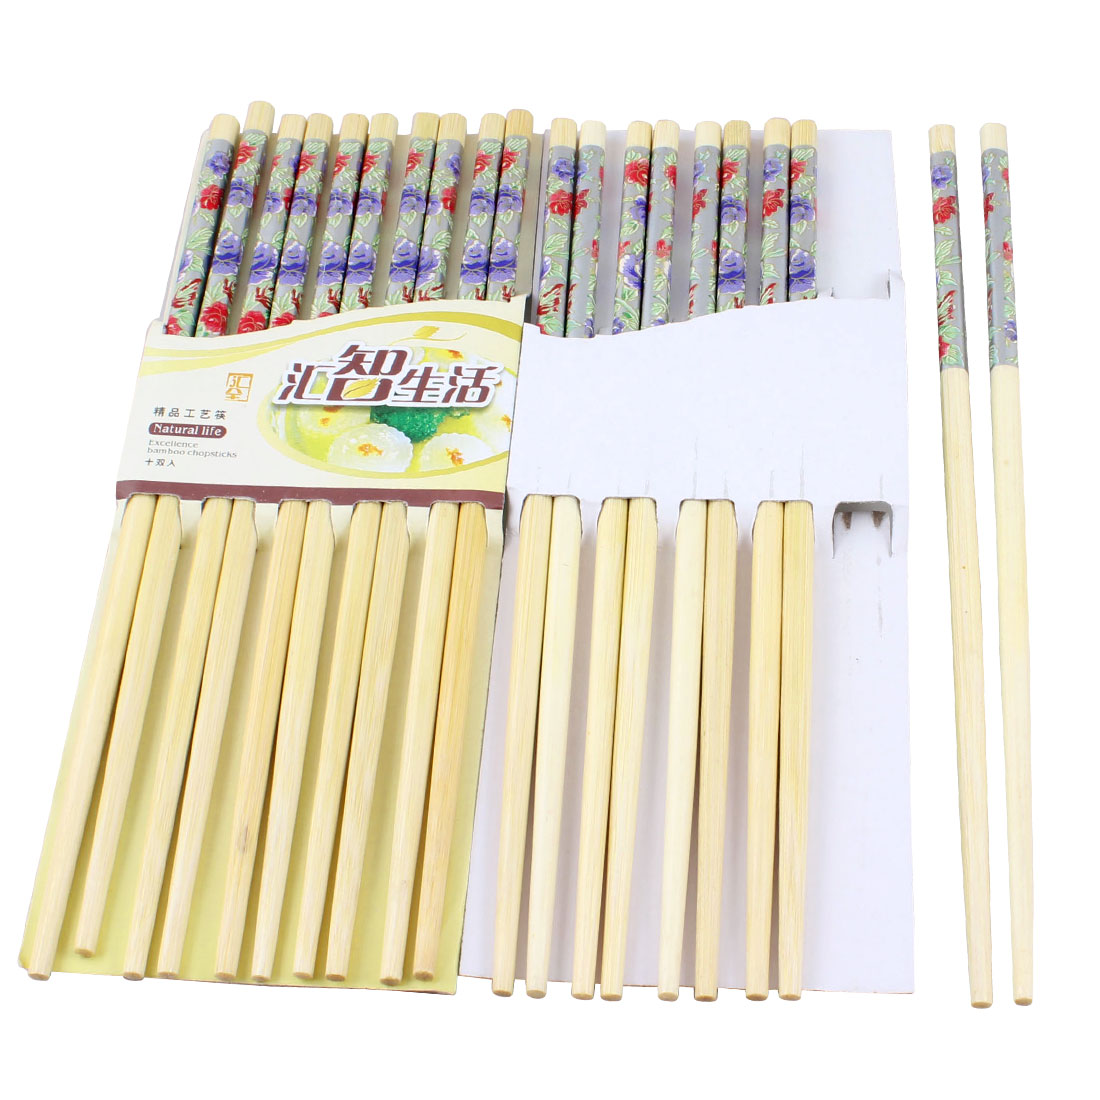 "Round Tip Flower Print 9.4"" Long Bamboo Chinese Chopsticks Wooden Color 10 Pairs"